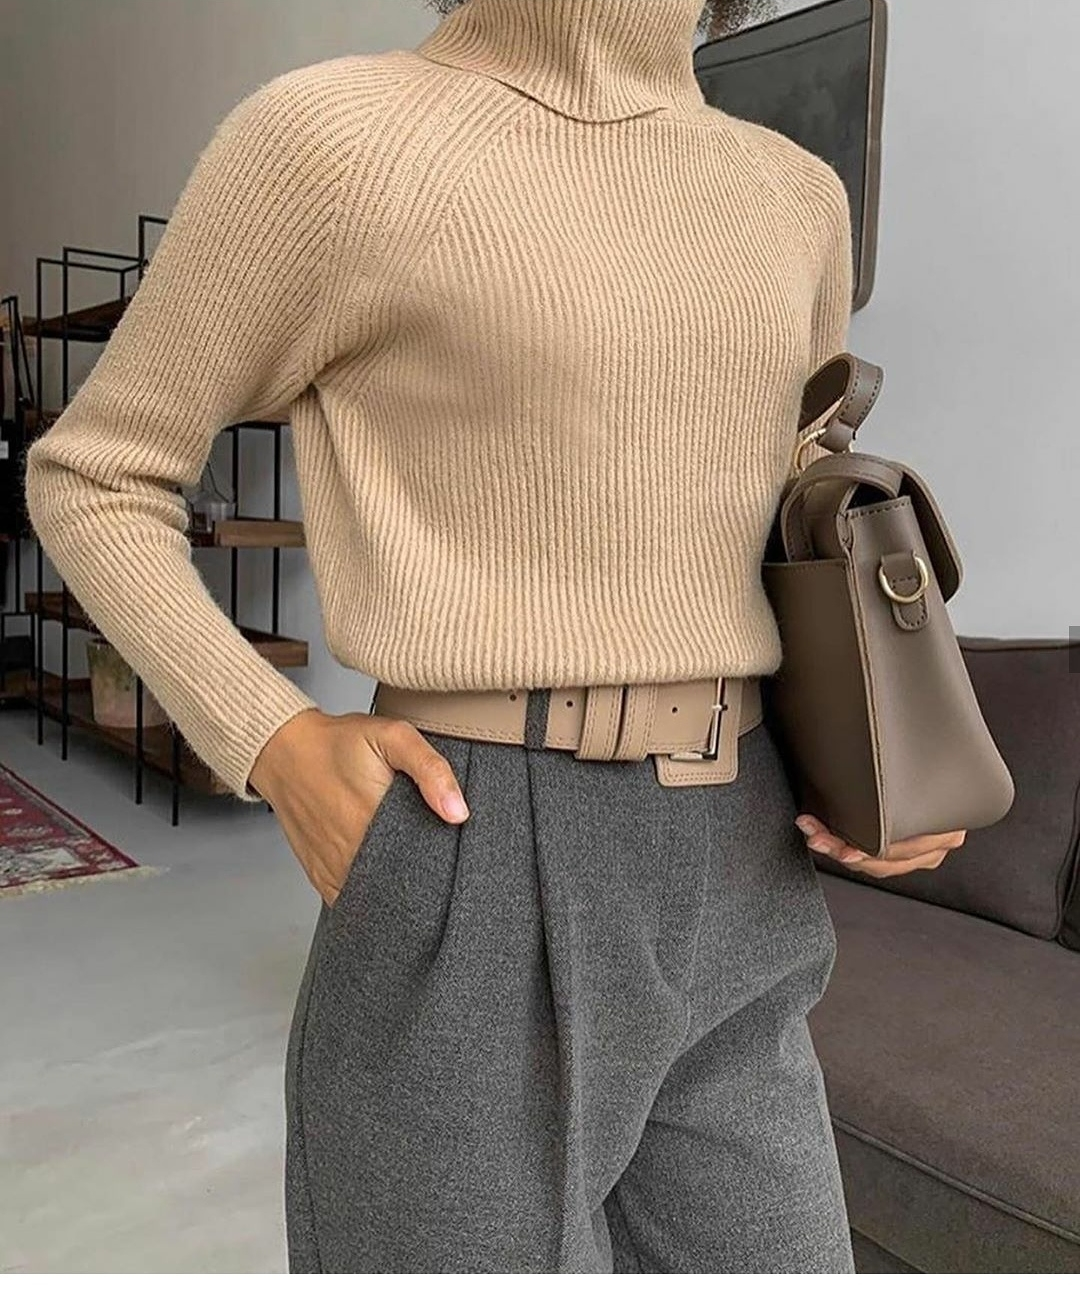 3 Basic Pieces Make the Perfect Chic Outfit